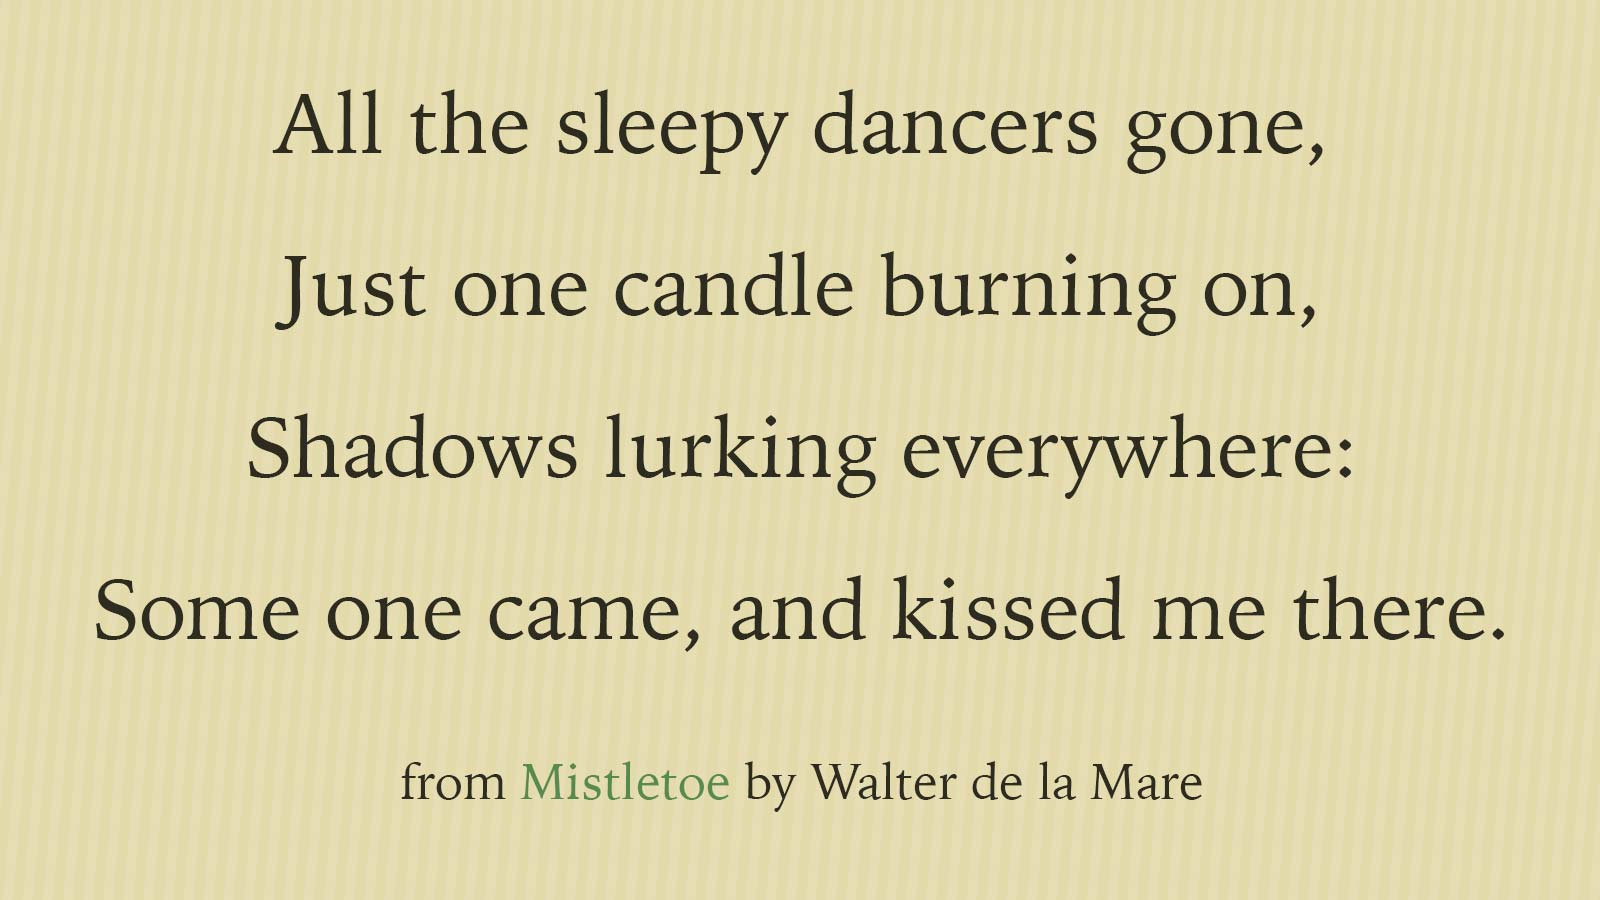 All the sleepy dancers gone, Just one candle burning on, Shadows lurking everywhere: Some one came, and kissed me there. From Mistletoe by Walter de la Mare.